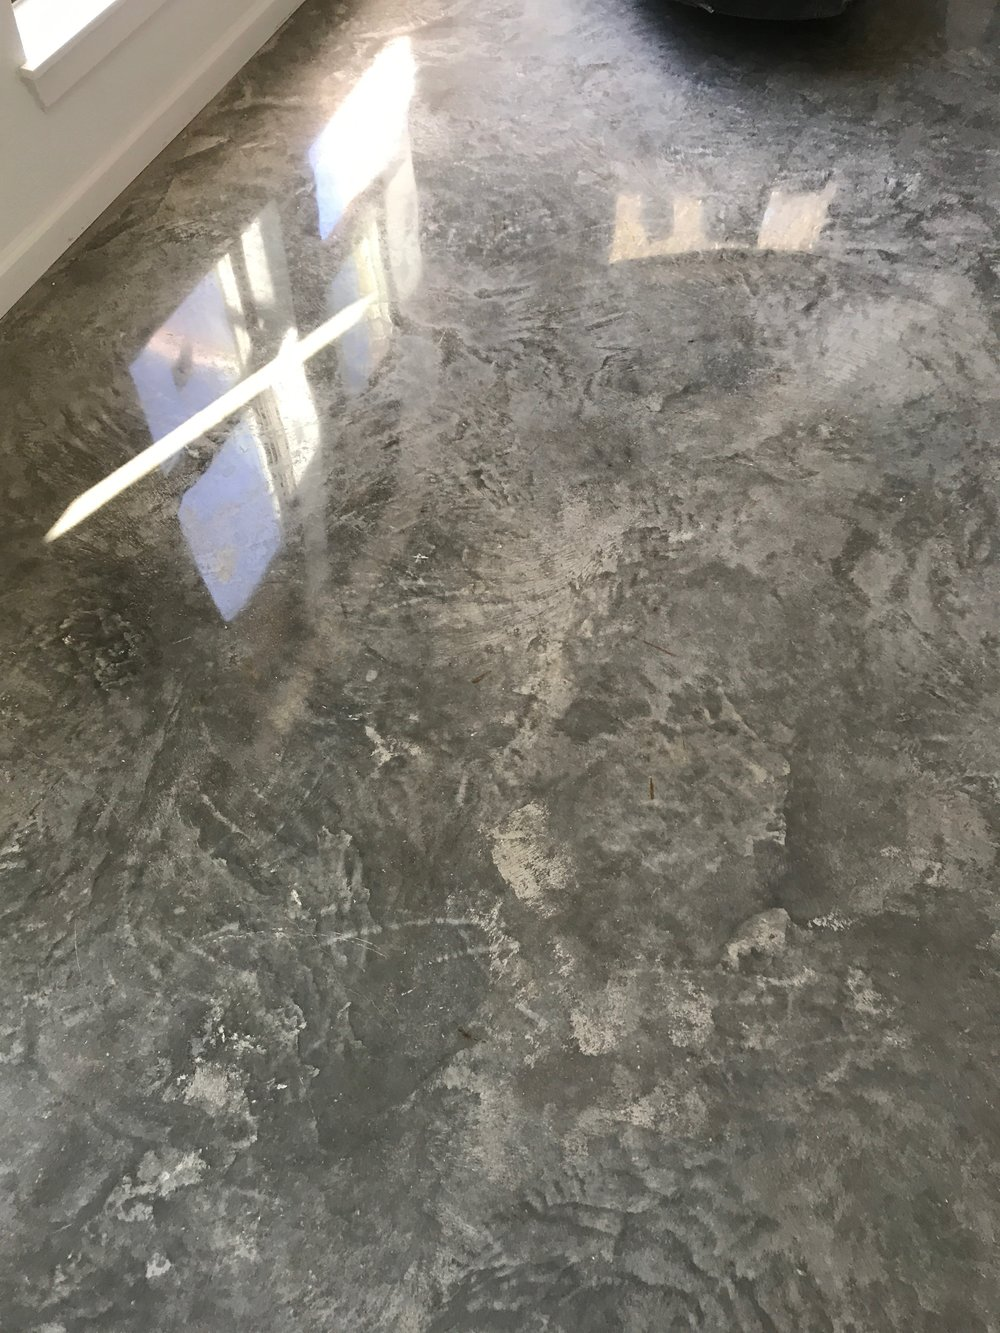 A 10% fly ash, cream polished Craftsman Concrete floor. The high fly ash content increases the depth of the natural design on the floor's surface and allows for a highly reflective finish.